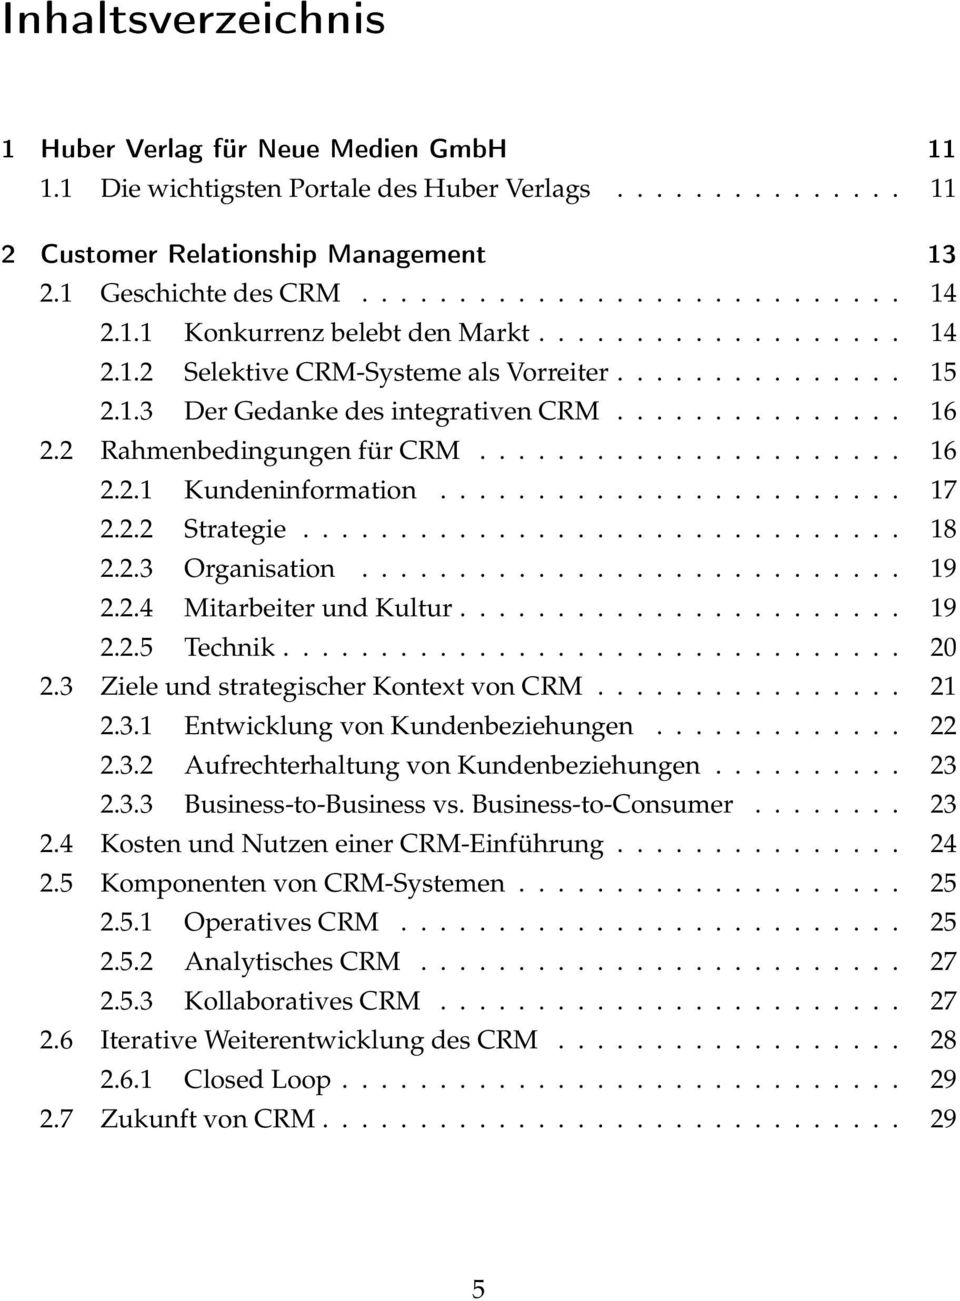 2 Rahmenbedingungen für CRM...................... 16 2.2.1 Kundeninformation........................ 17 2.2.2 Strategie............................... 18 2.2.3 Organisation............................ 19 2.